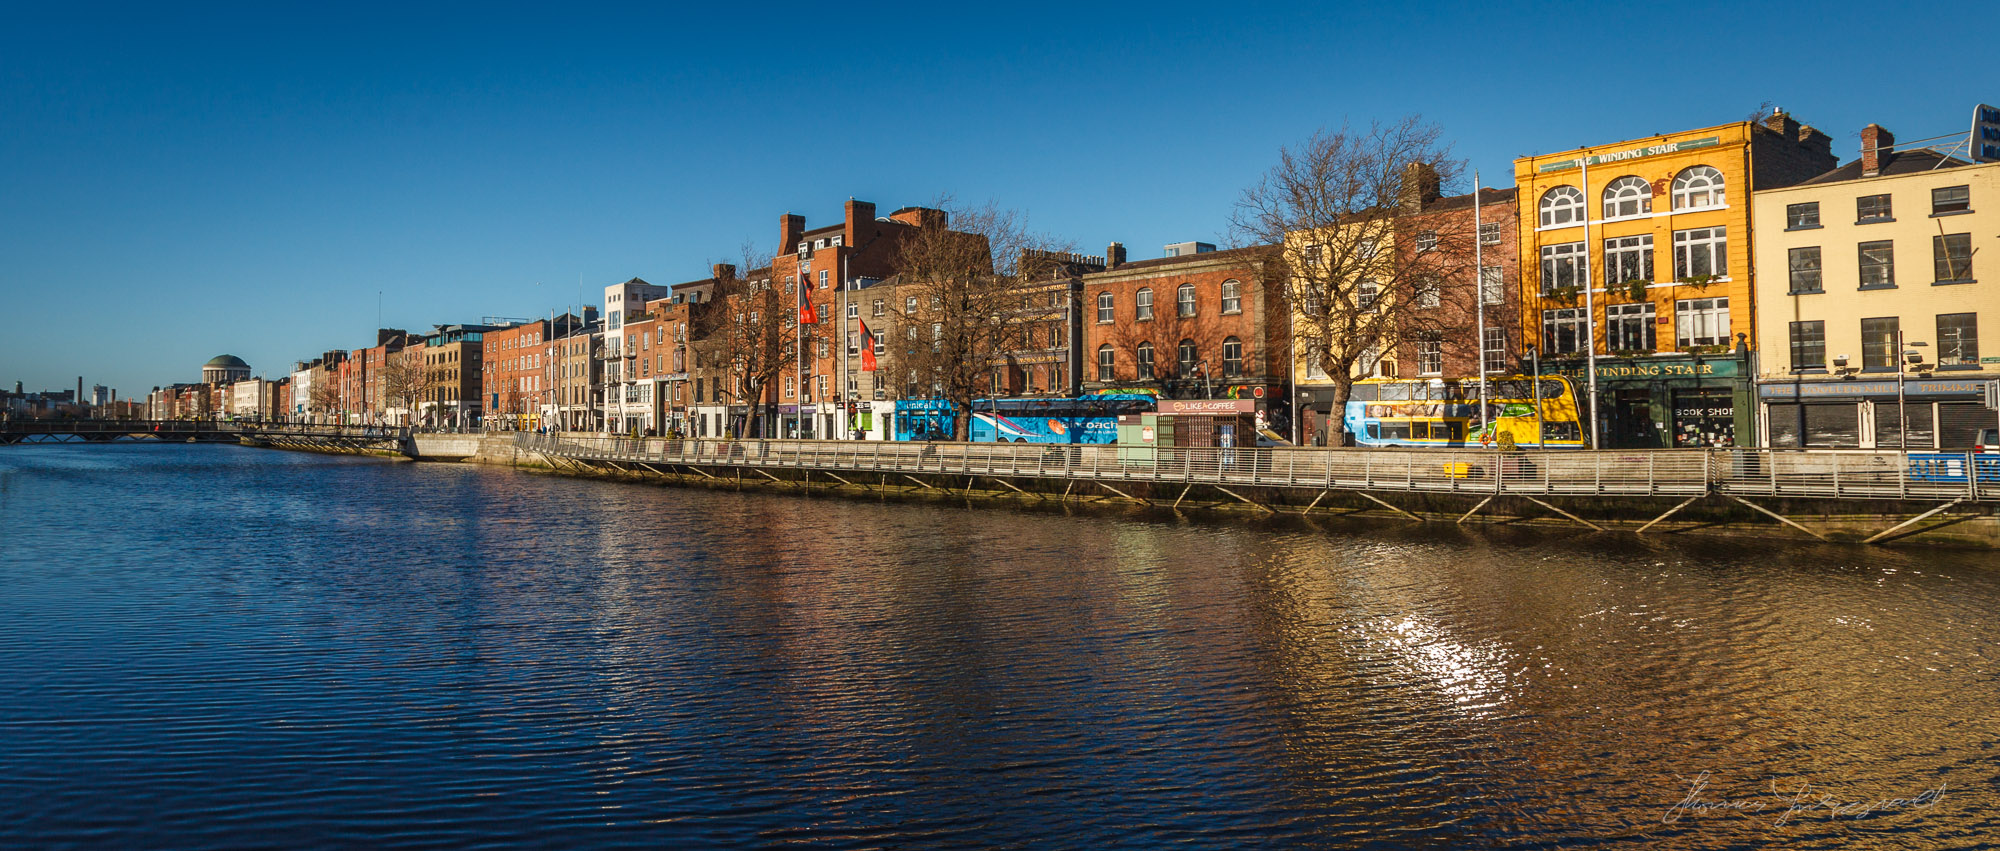 North side of the Liffey